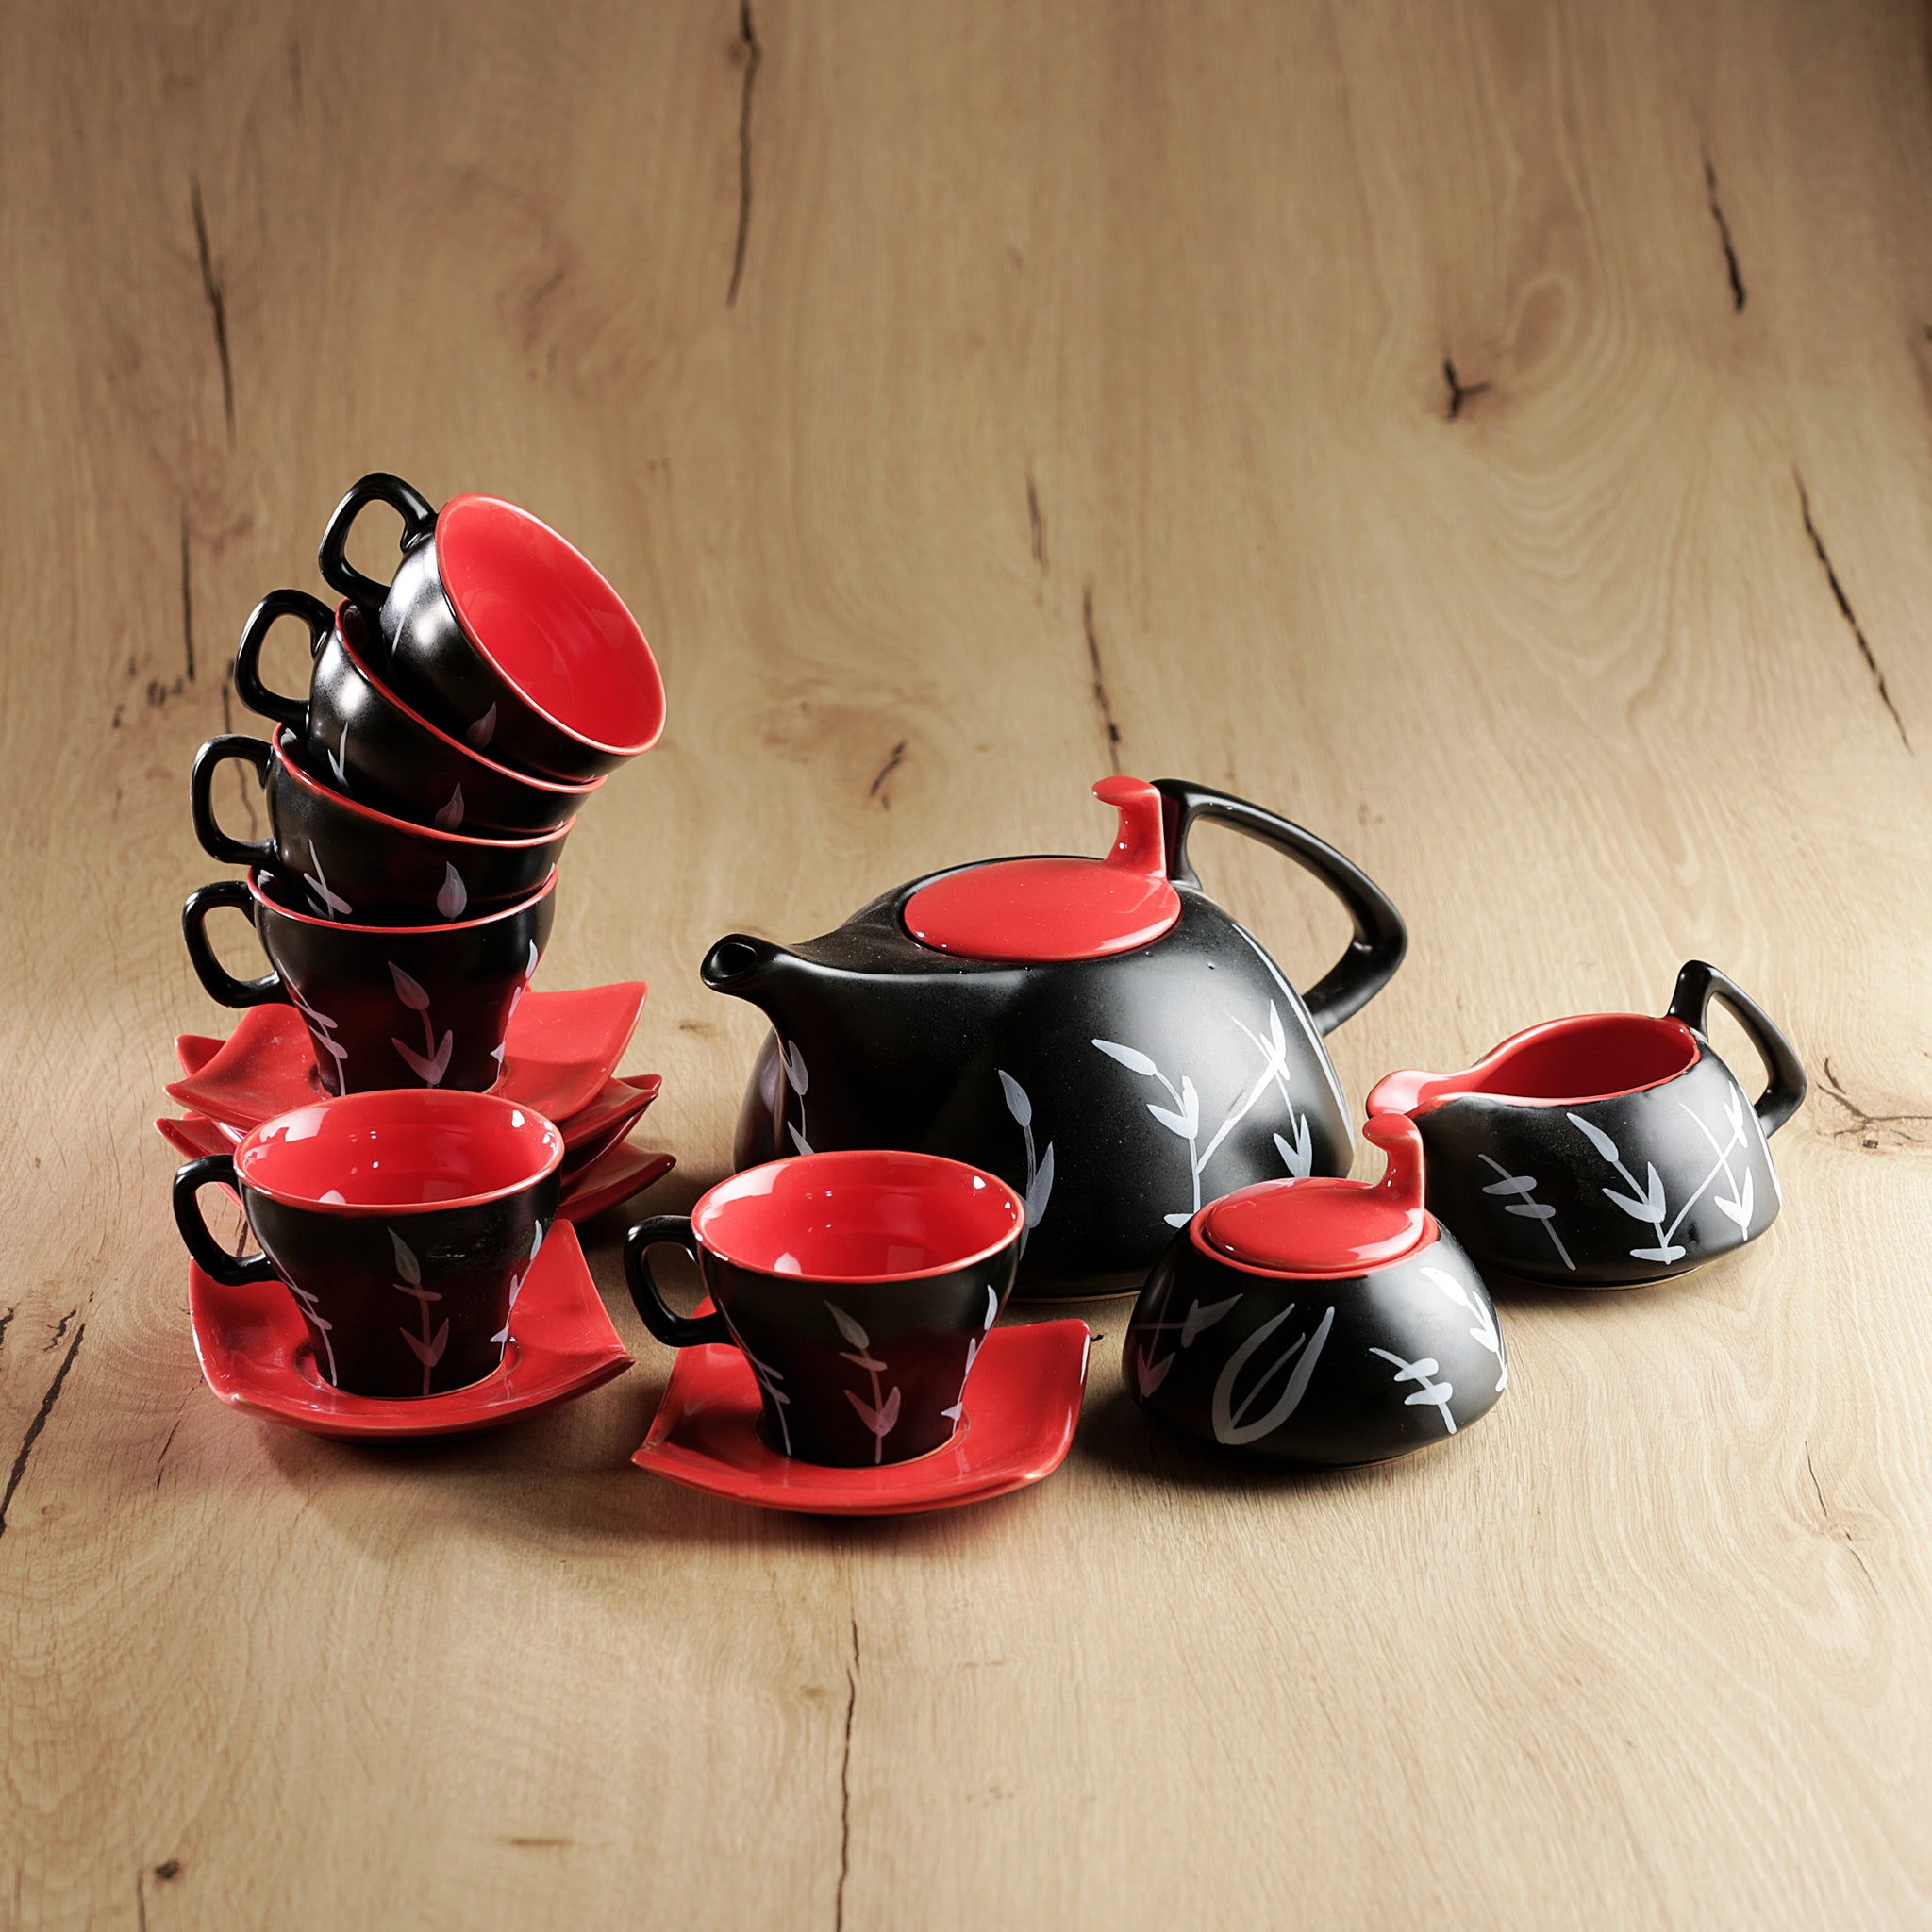 Bamboo Noveau Tea Set - Red and Black - Set of 15 pcs